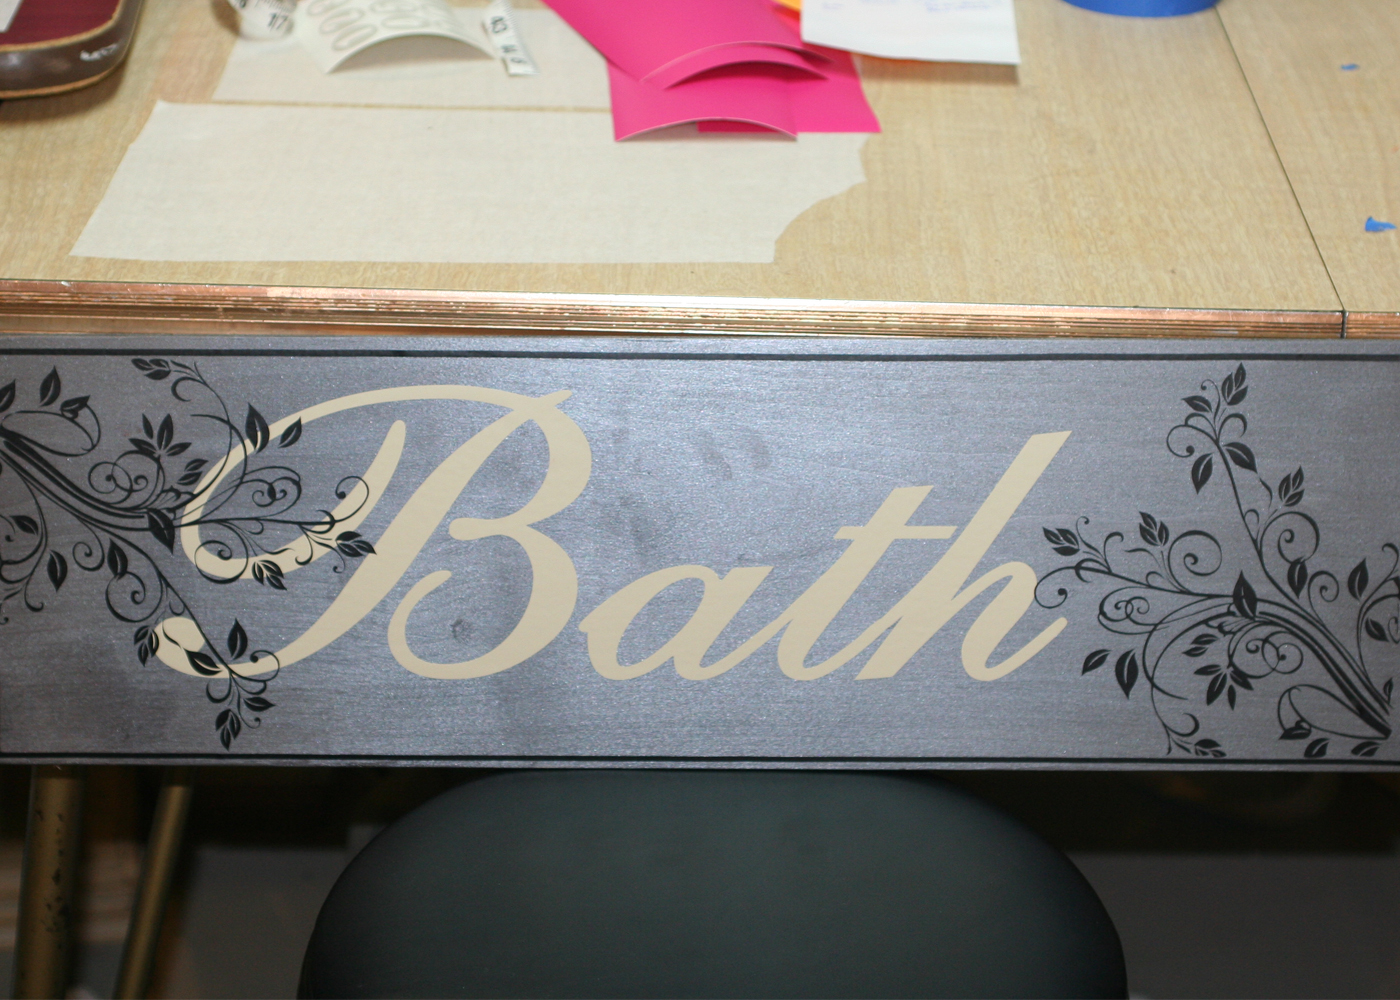 bath-vinyl-decal-lettering-with-scrolls-on-board.jpg